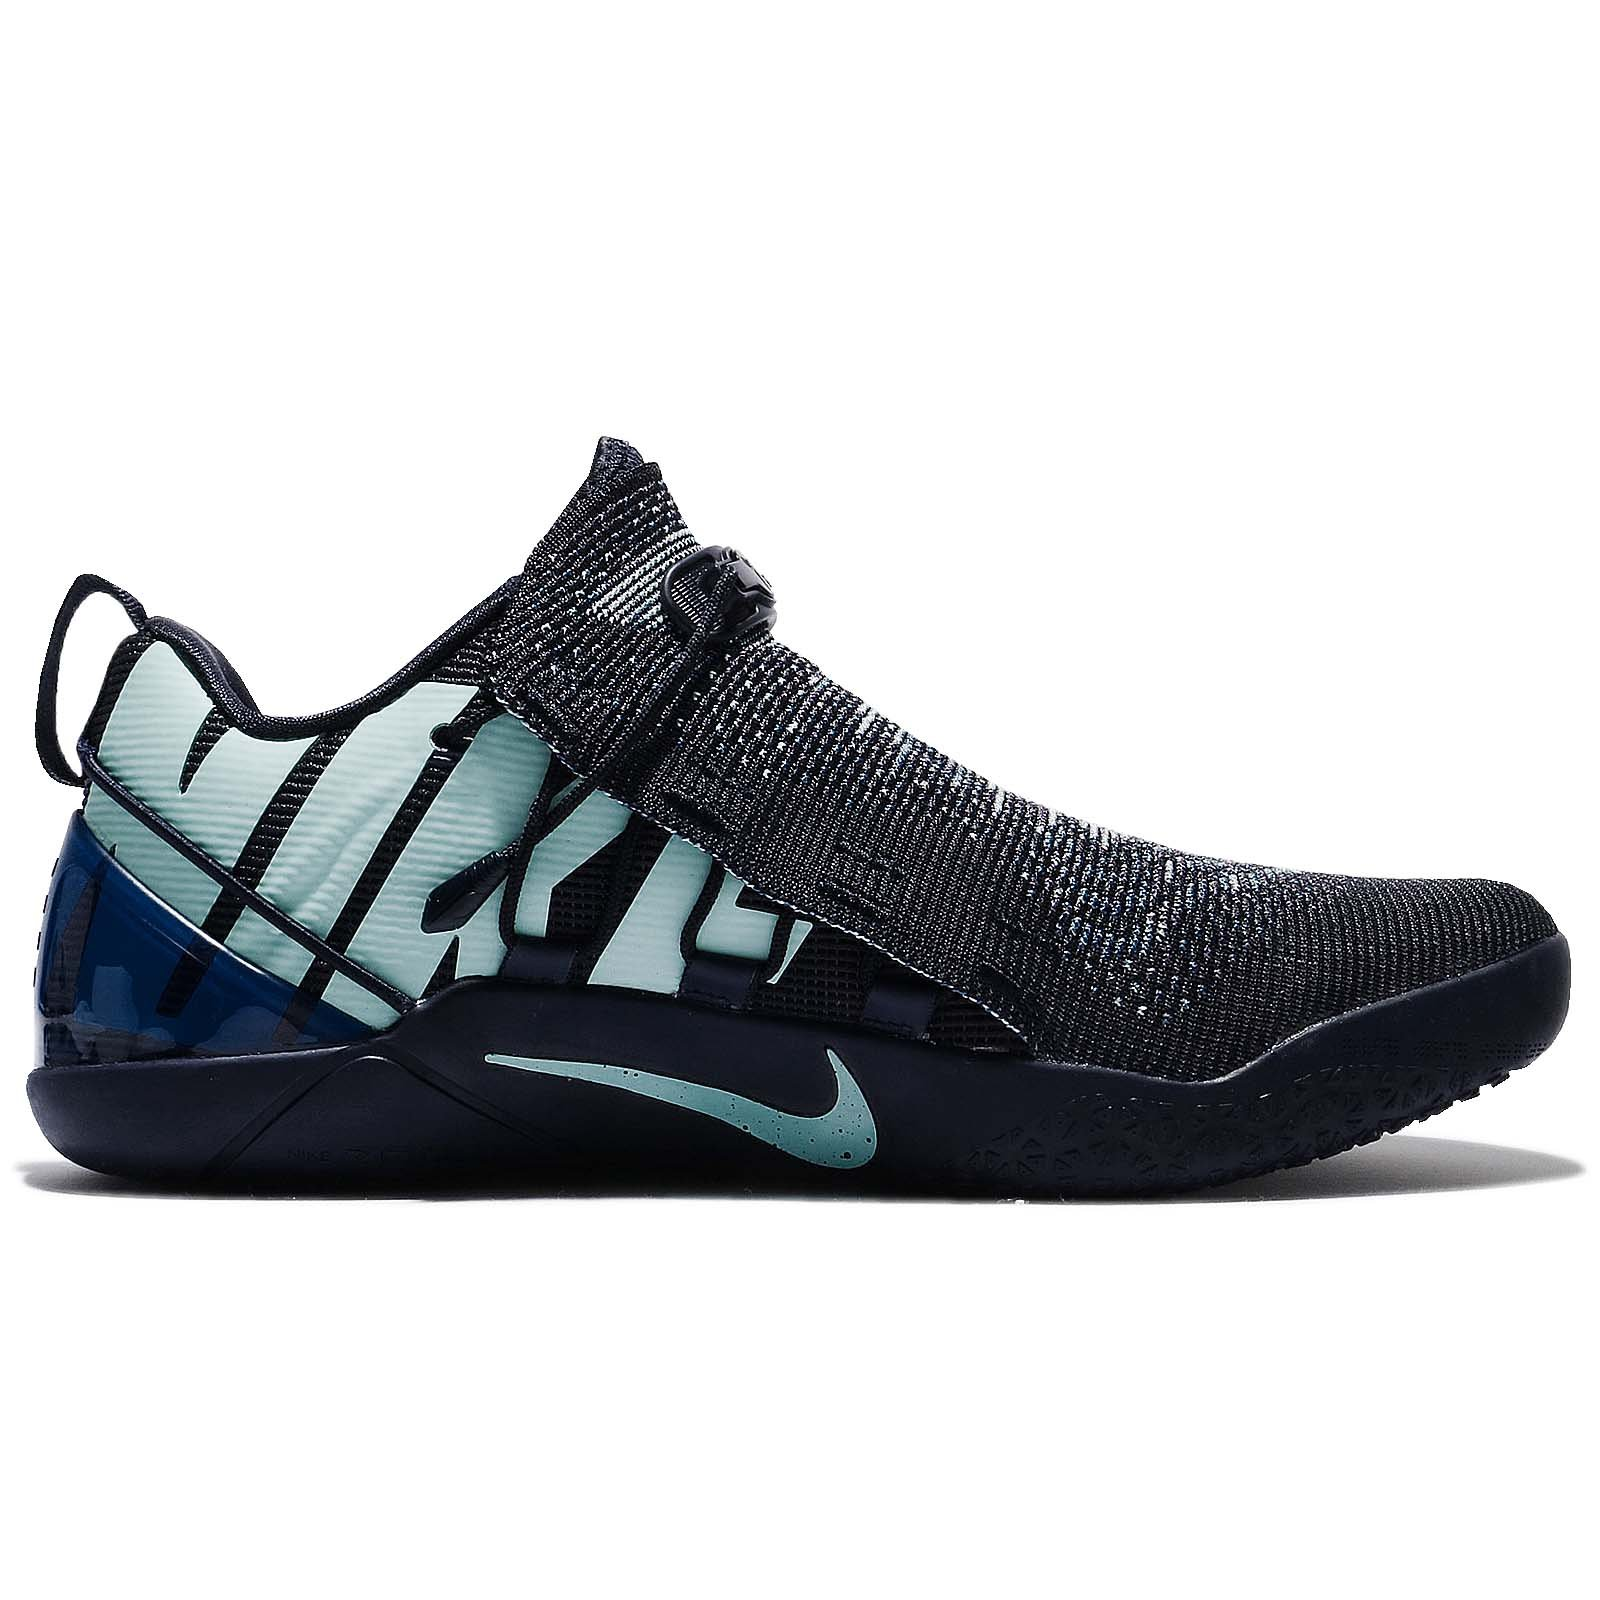 Nike Men's Kobe A.D. NXT AD, Mambacurial FC Barcelona College Navy Igloo, 9.5 M US by NIKE (Image #2)